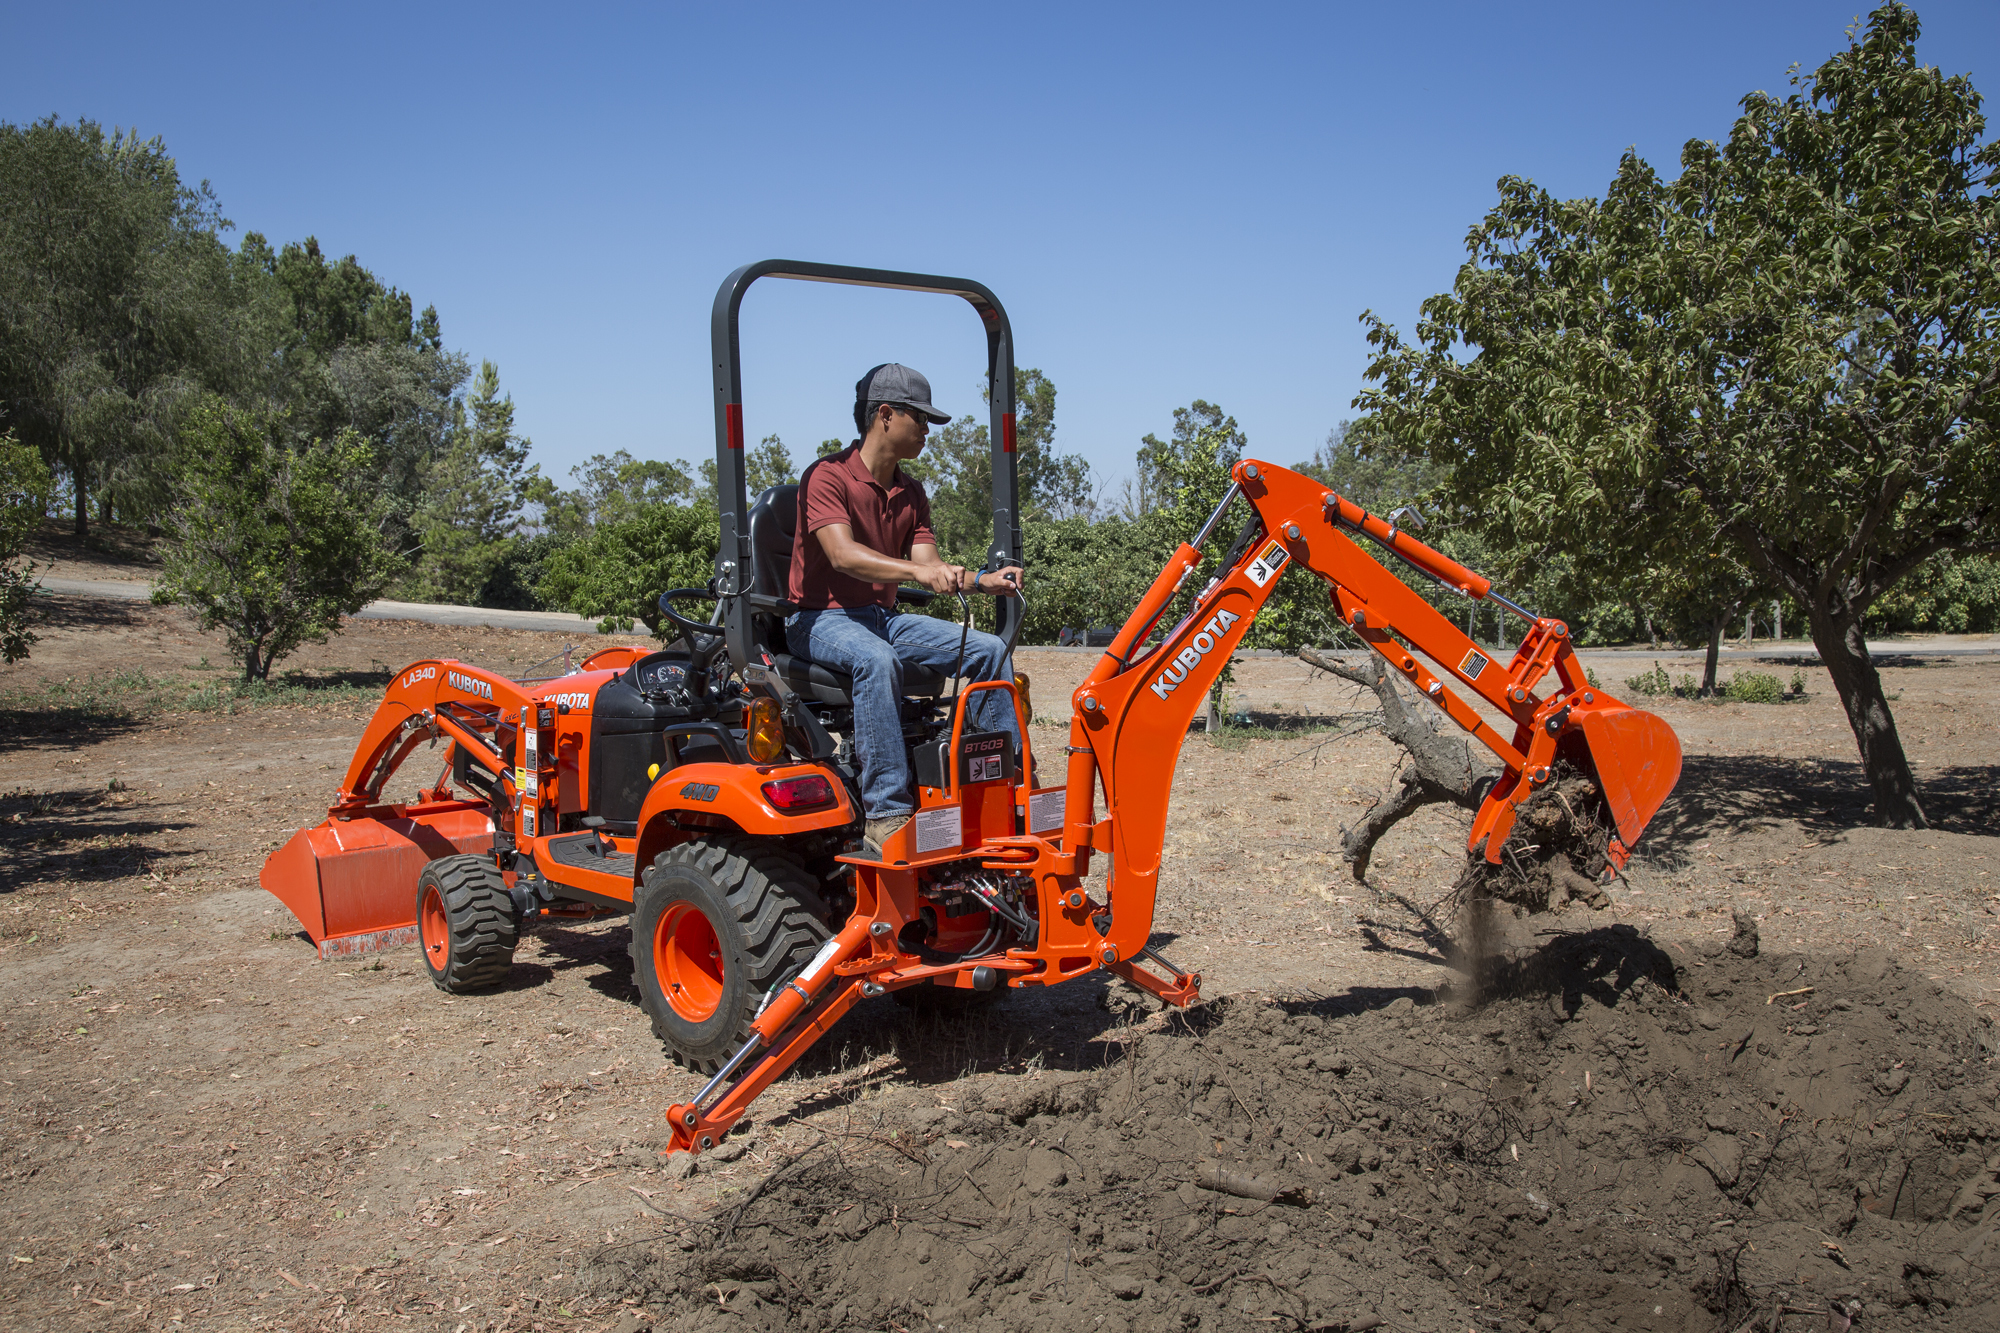 Kubota Redefines the Sub-Compact Tractor Market Once Again ... on kubota bx24 parts diagram, new holland tc30 wiring diagram, ford 1720 wiring diagram, kubota bx23 neutral safety switch, kubota tractor wiring diagrams, ez dumper trailer wiring diagram, kubota bx23 parts, john deere 3203 wiring diagram, kubota bx22 parts diagram, john deere 1435 wiring diagram, kubota bx23 tractor, john deere 2320 wiring diagram, kubota bx23 remote control, john deere 1070 wiring diagram, kioti lb1914 wiring diagram, kubota regulator wiring, fans wiring diagram, lights wiring diagram, accessories wiring diagram, kubota tractor glow plug diagram,